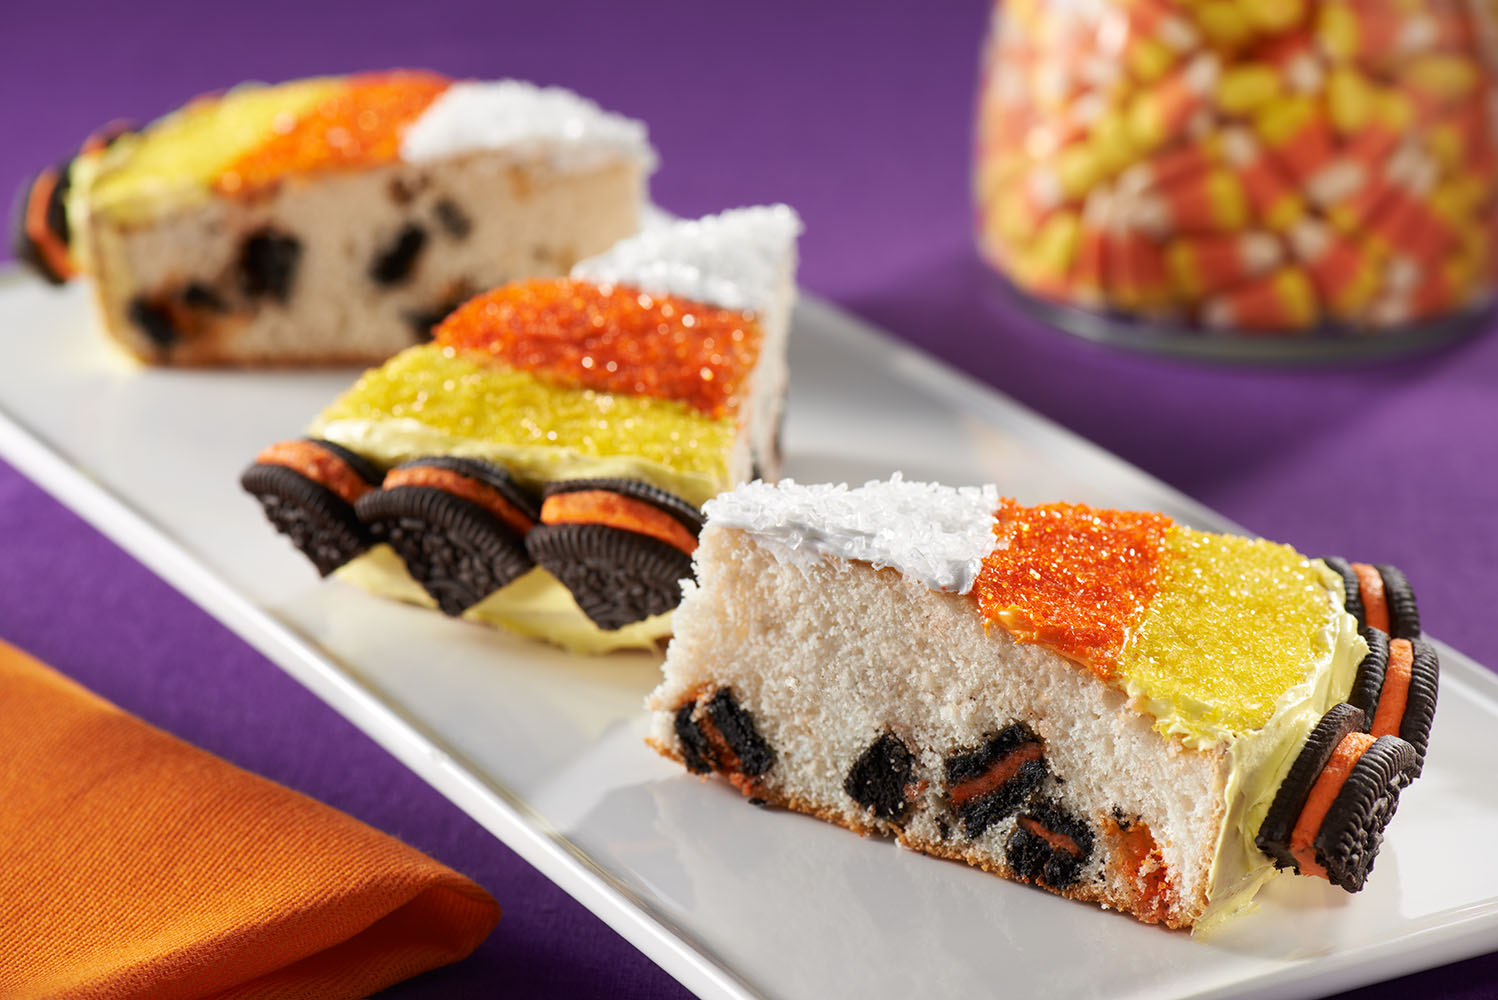 Candy Corn Cakes Image 1